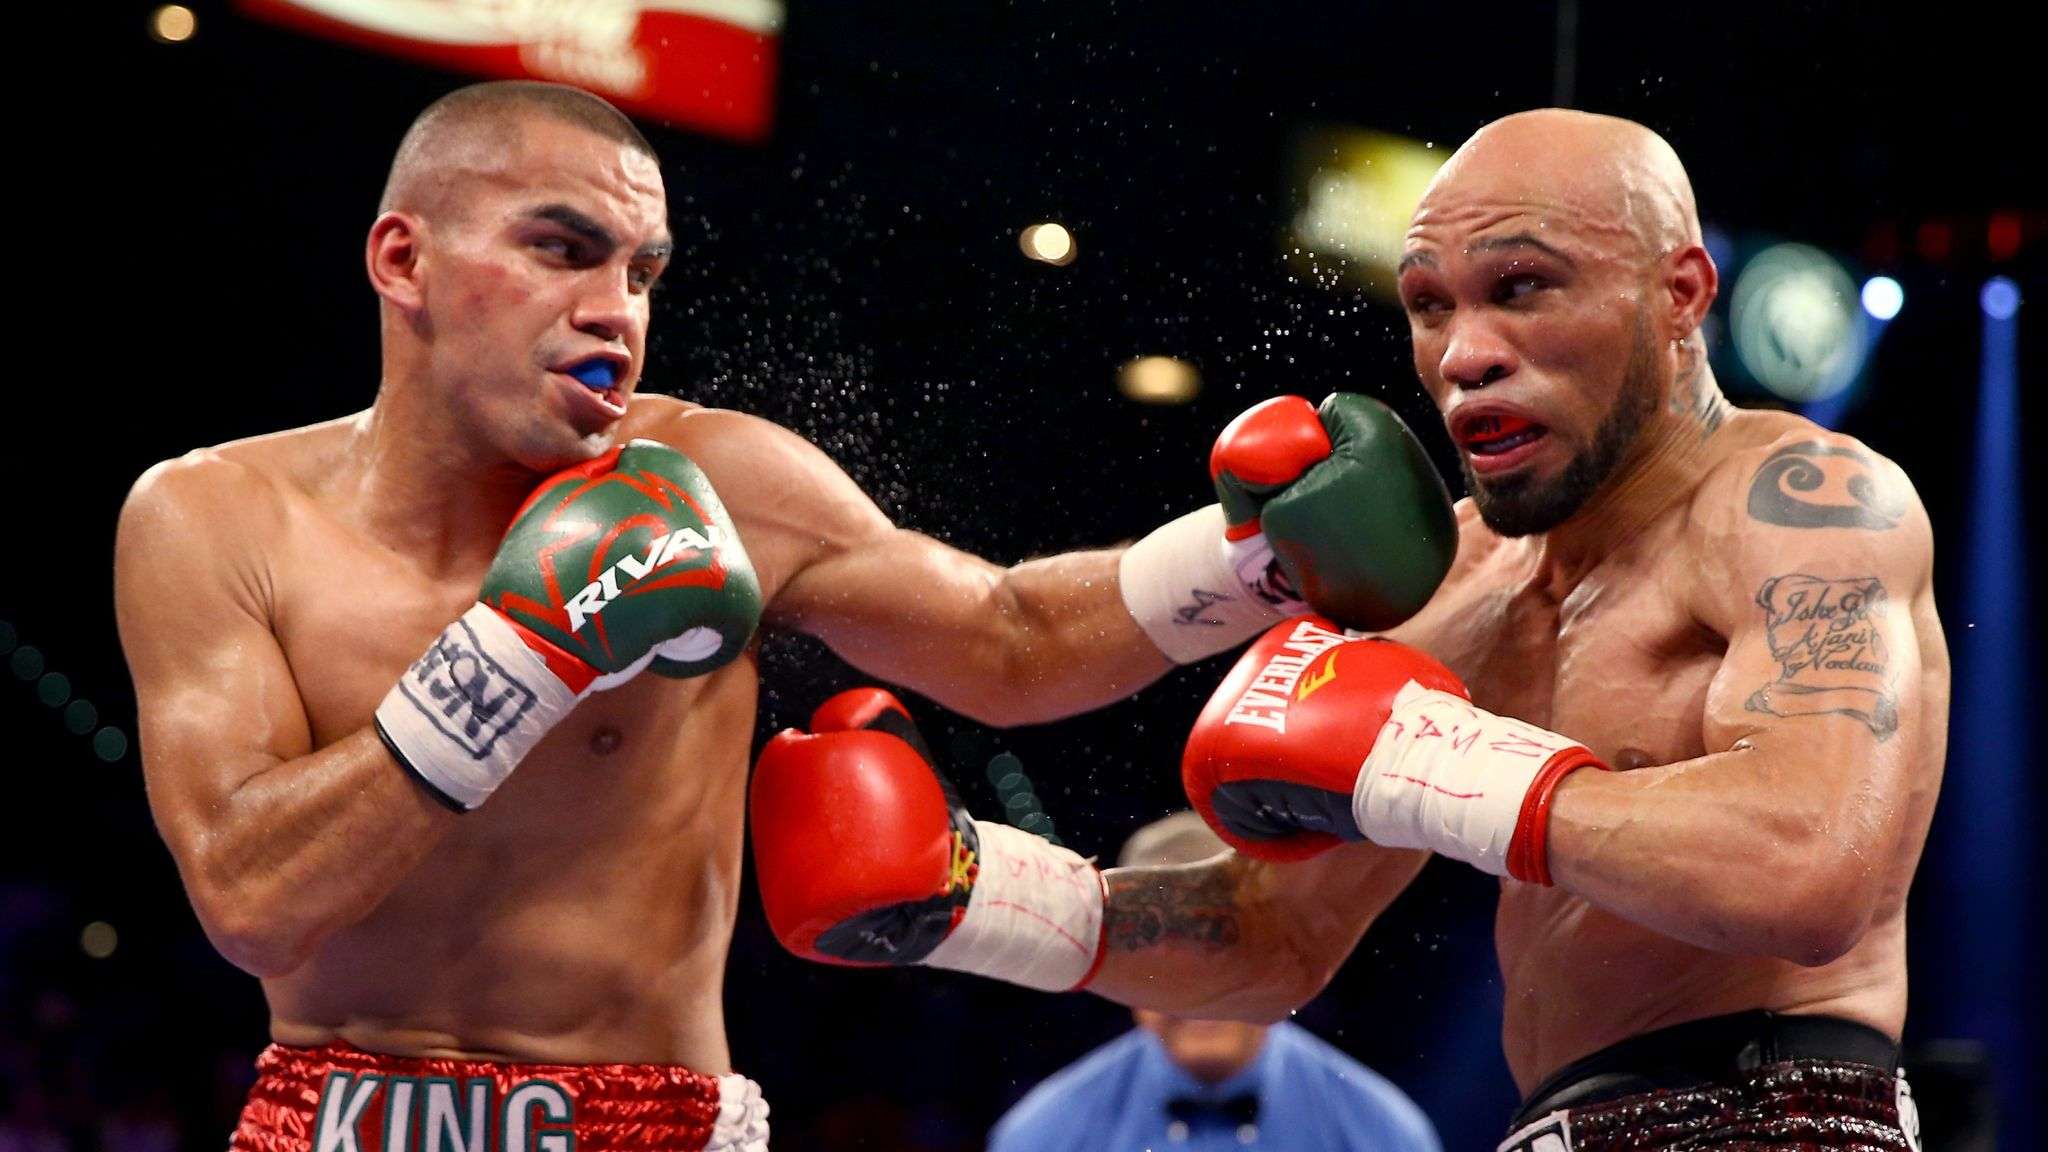 Carlos molina vs ishe smith betting odds betting on your weight loss